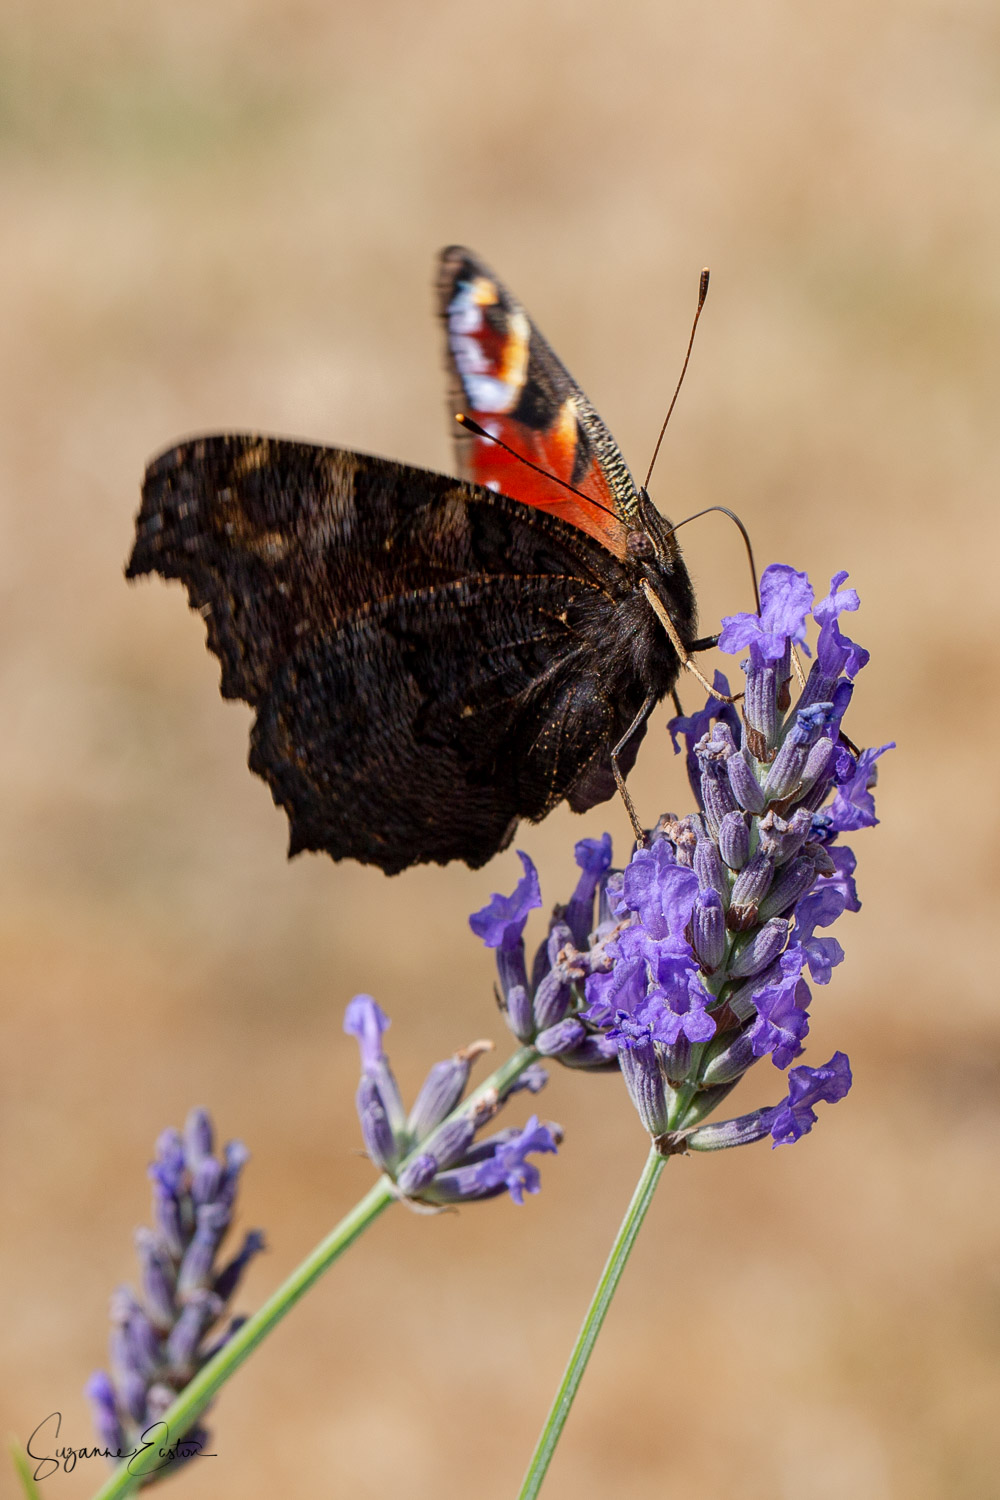 The peacock butterfly feeds and basks on a lavender flower in Somerset